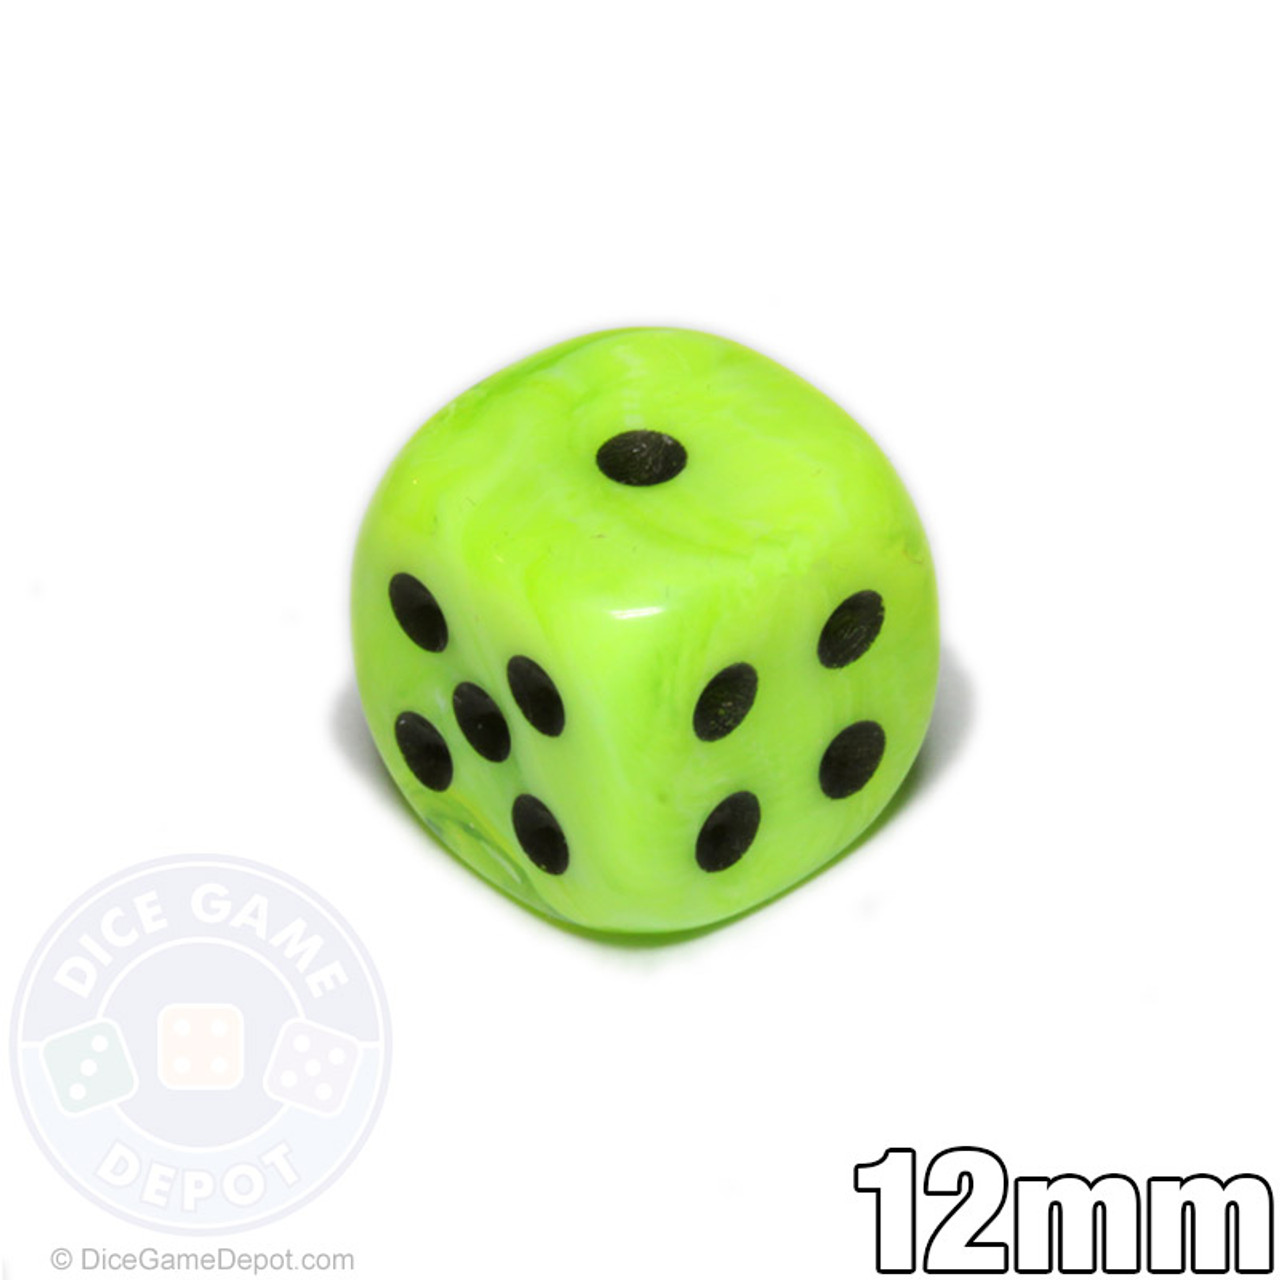 Bright Green 12mm Vortex Dice For Sale Dice Game Depot